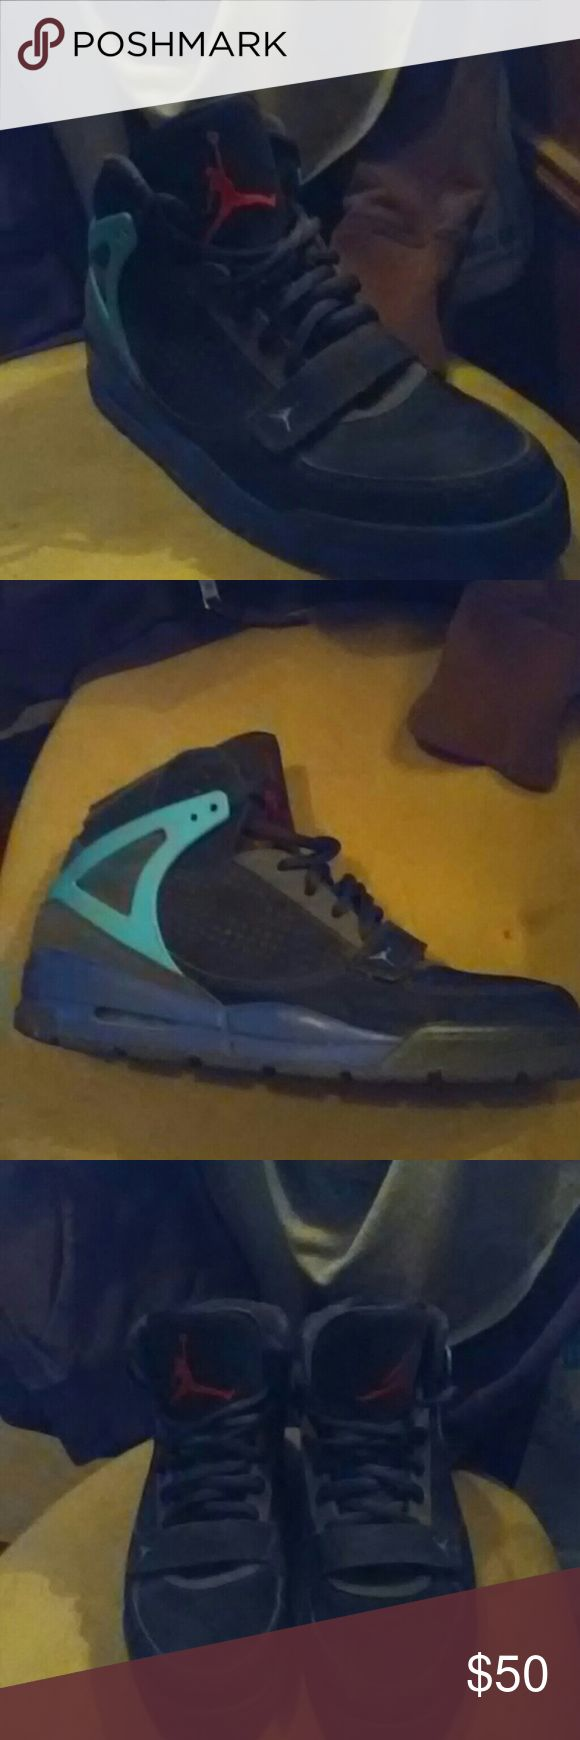 Jordans size 13 Black, turquoise, and purple Jordan's. In good condition no wear on bottom of sole, no stain or rips. They are used but still in good condition. Plz look at pic before you purchace Jordan Shoes Sneakers